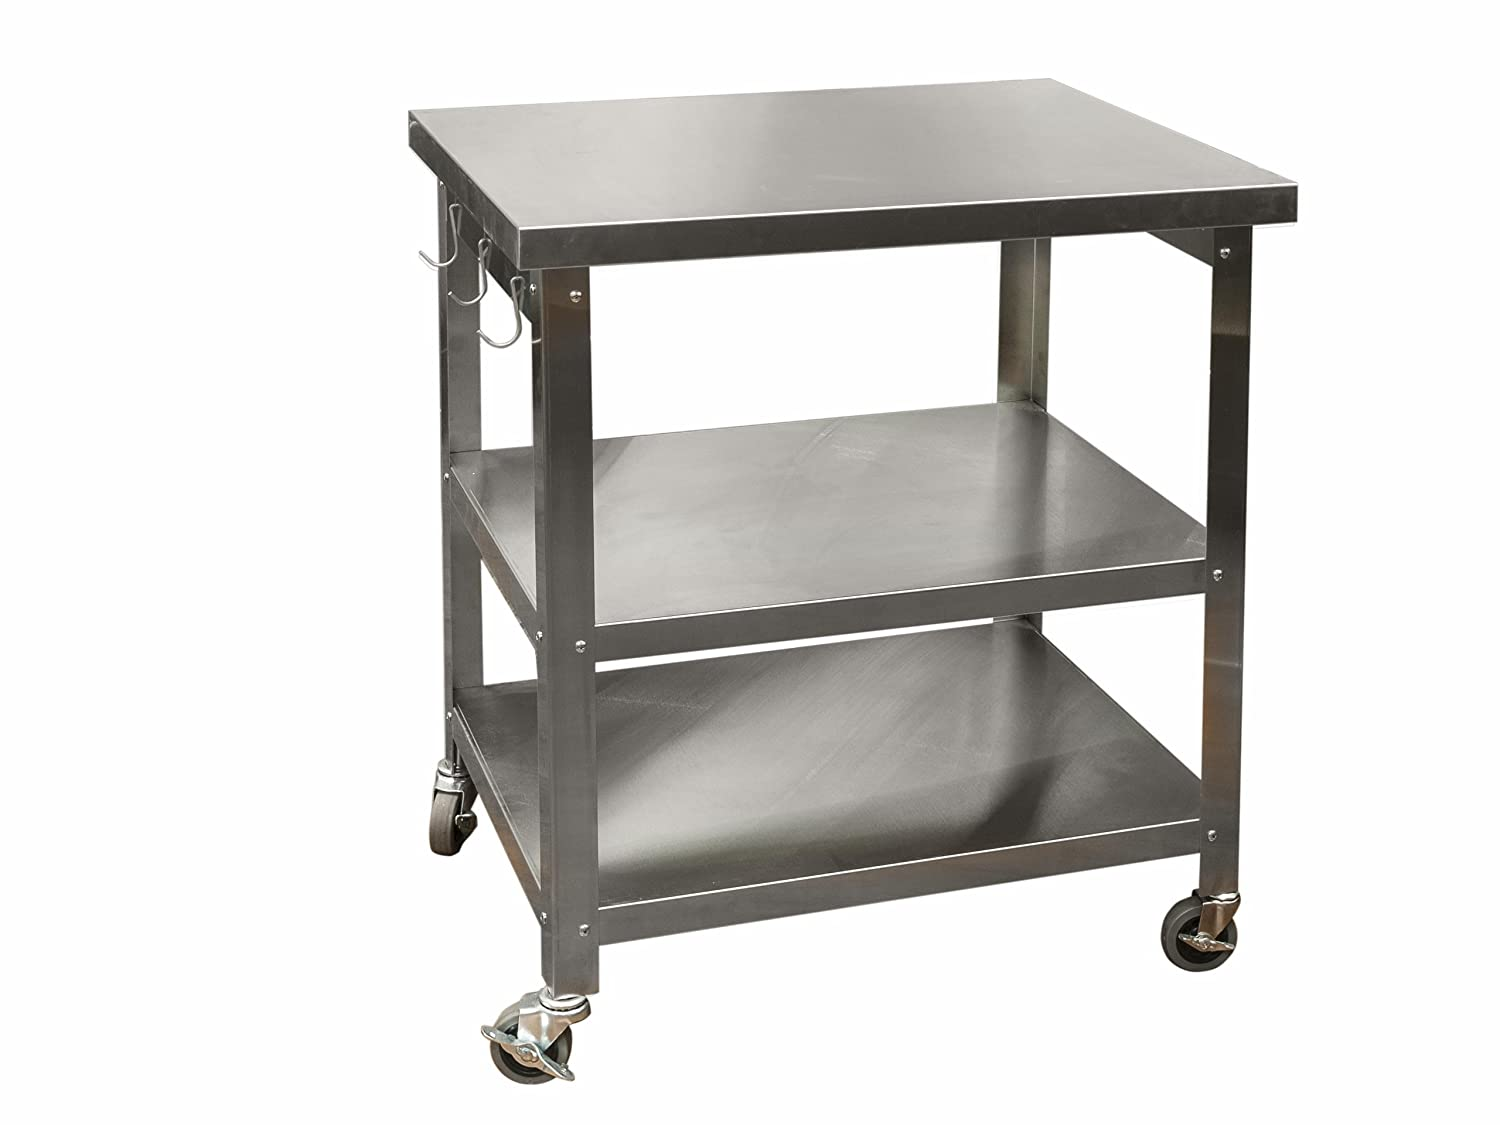 Beau Amazon.com   Danver Stainless Steel Kitchen Cart, 27 Inch   Kitchen Islands  U0026 Carts